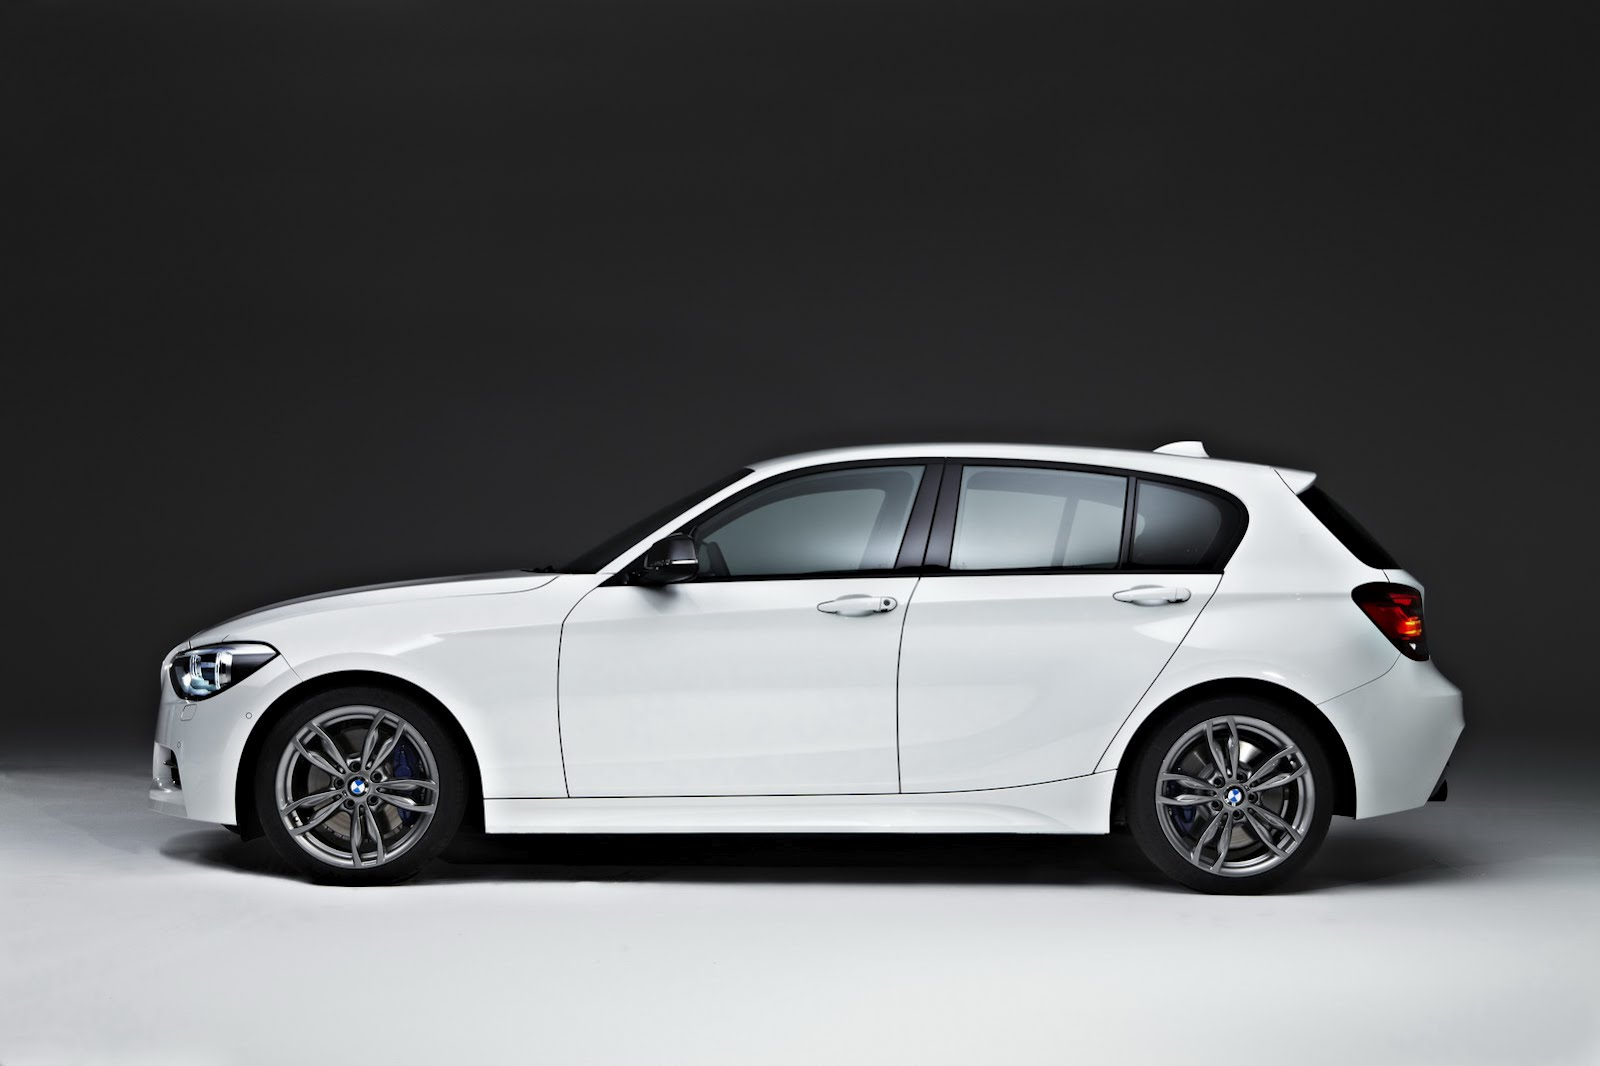 bmw 114i technical details history photos on better parts ltd